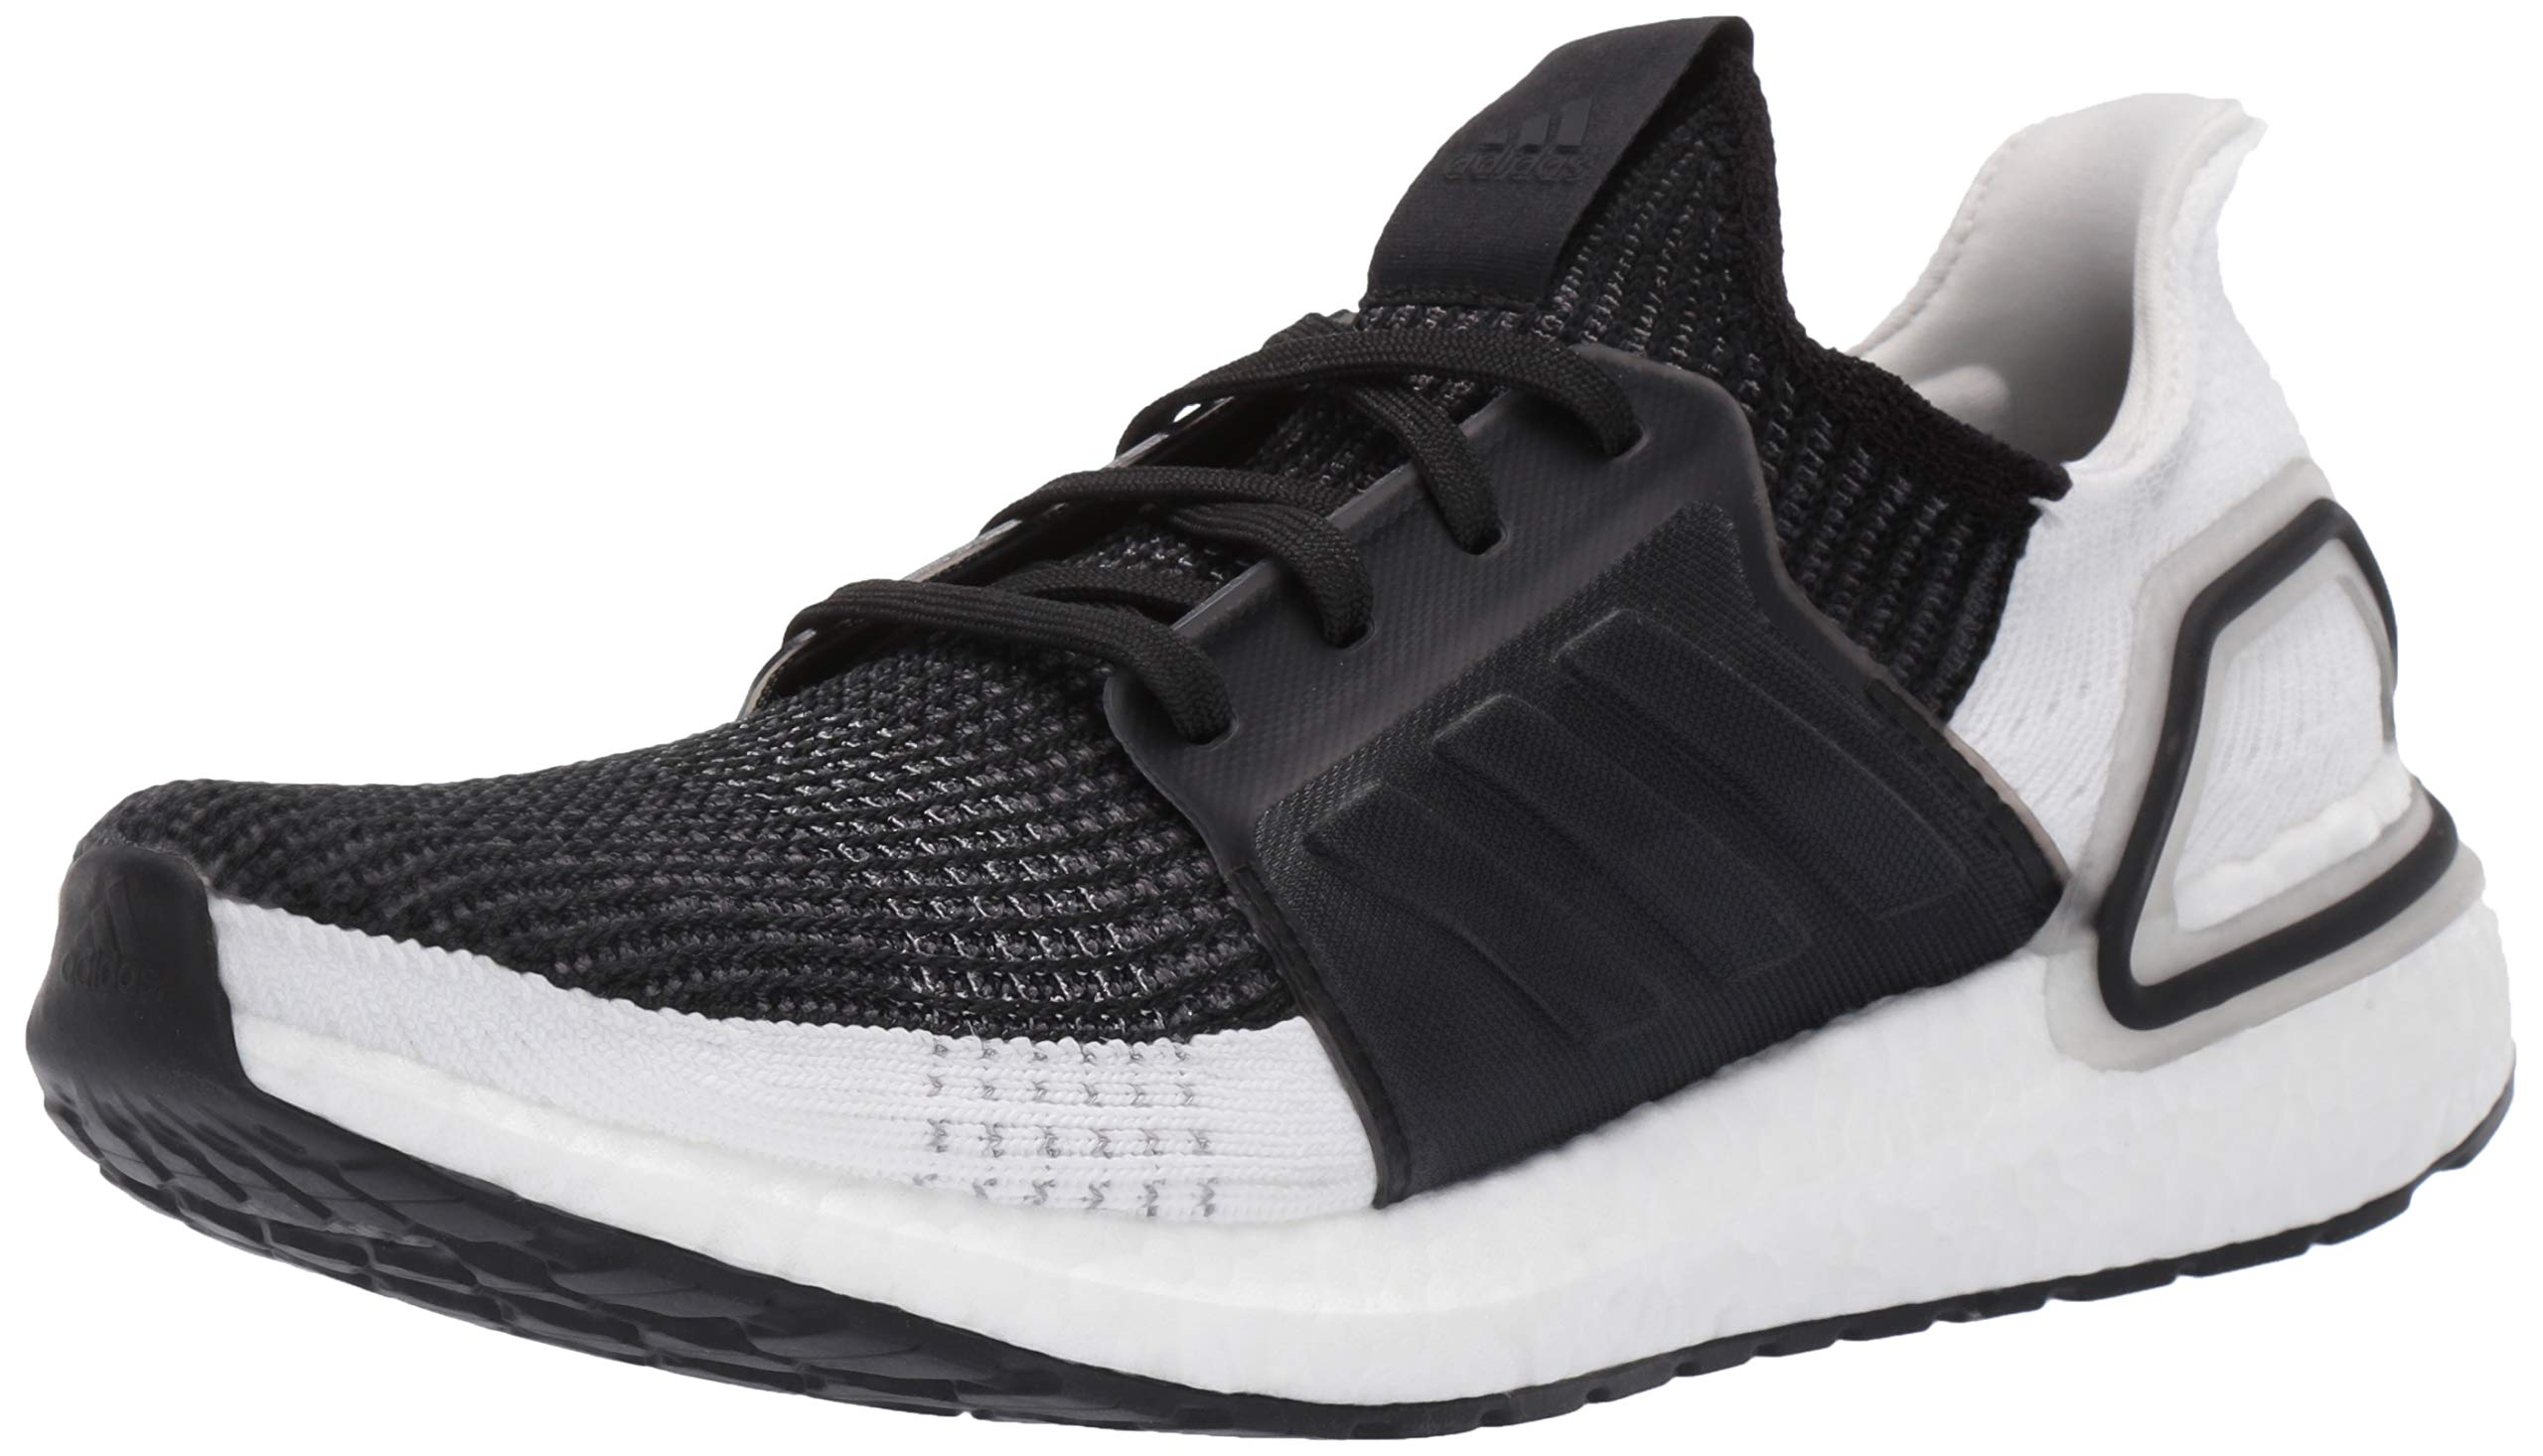 adidas Men's Ultraboost 19, Black Grey, 11 M US